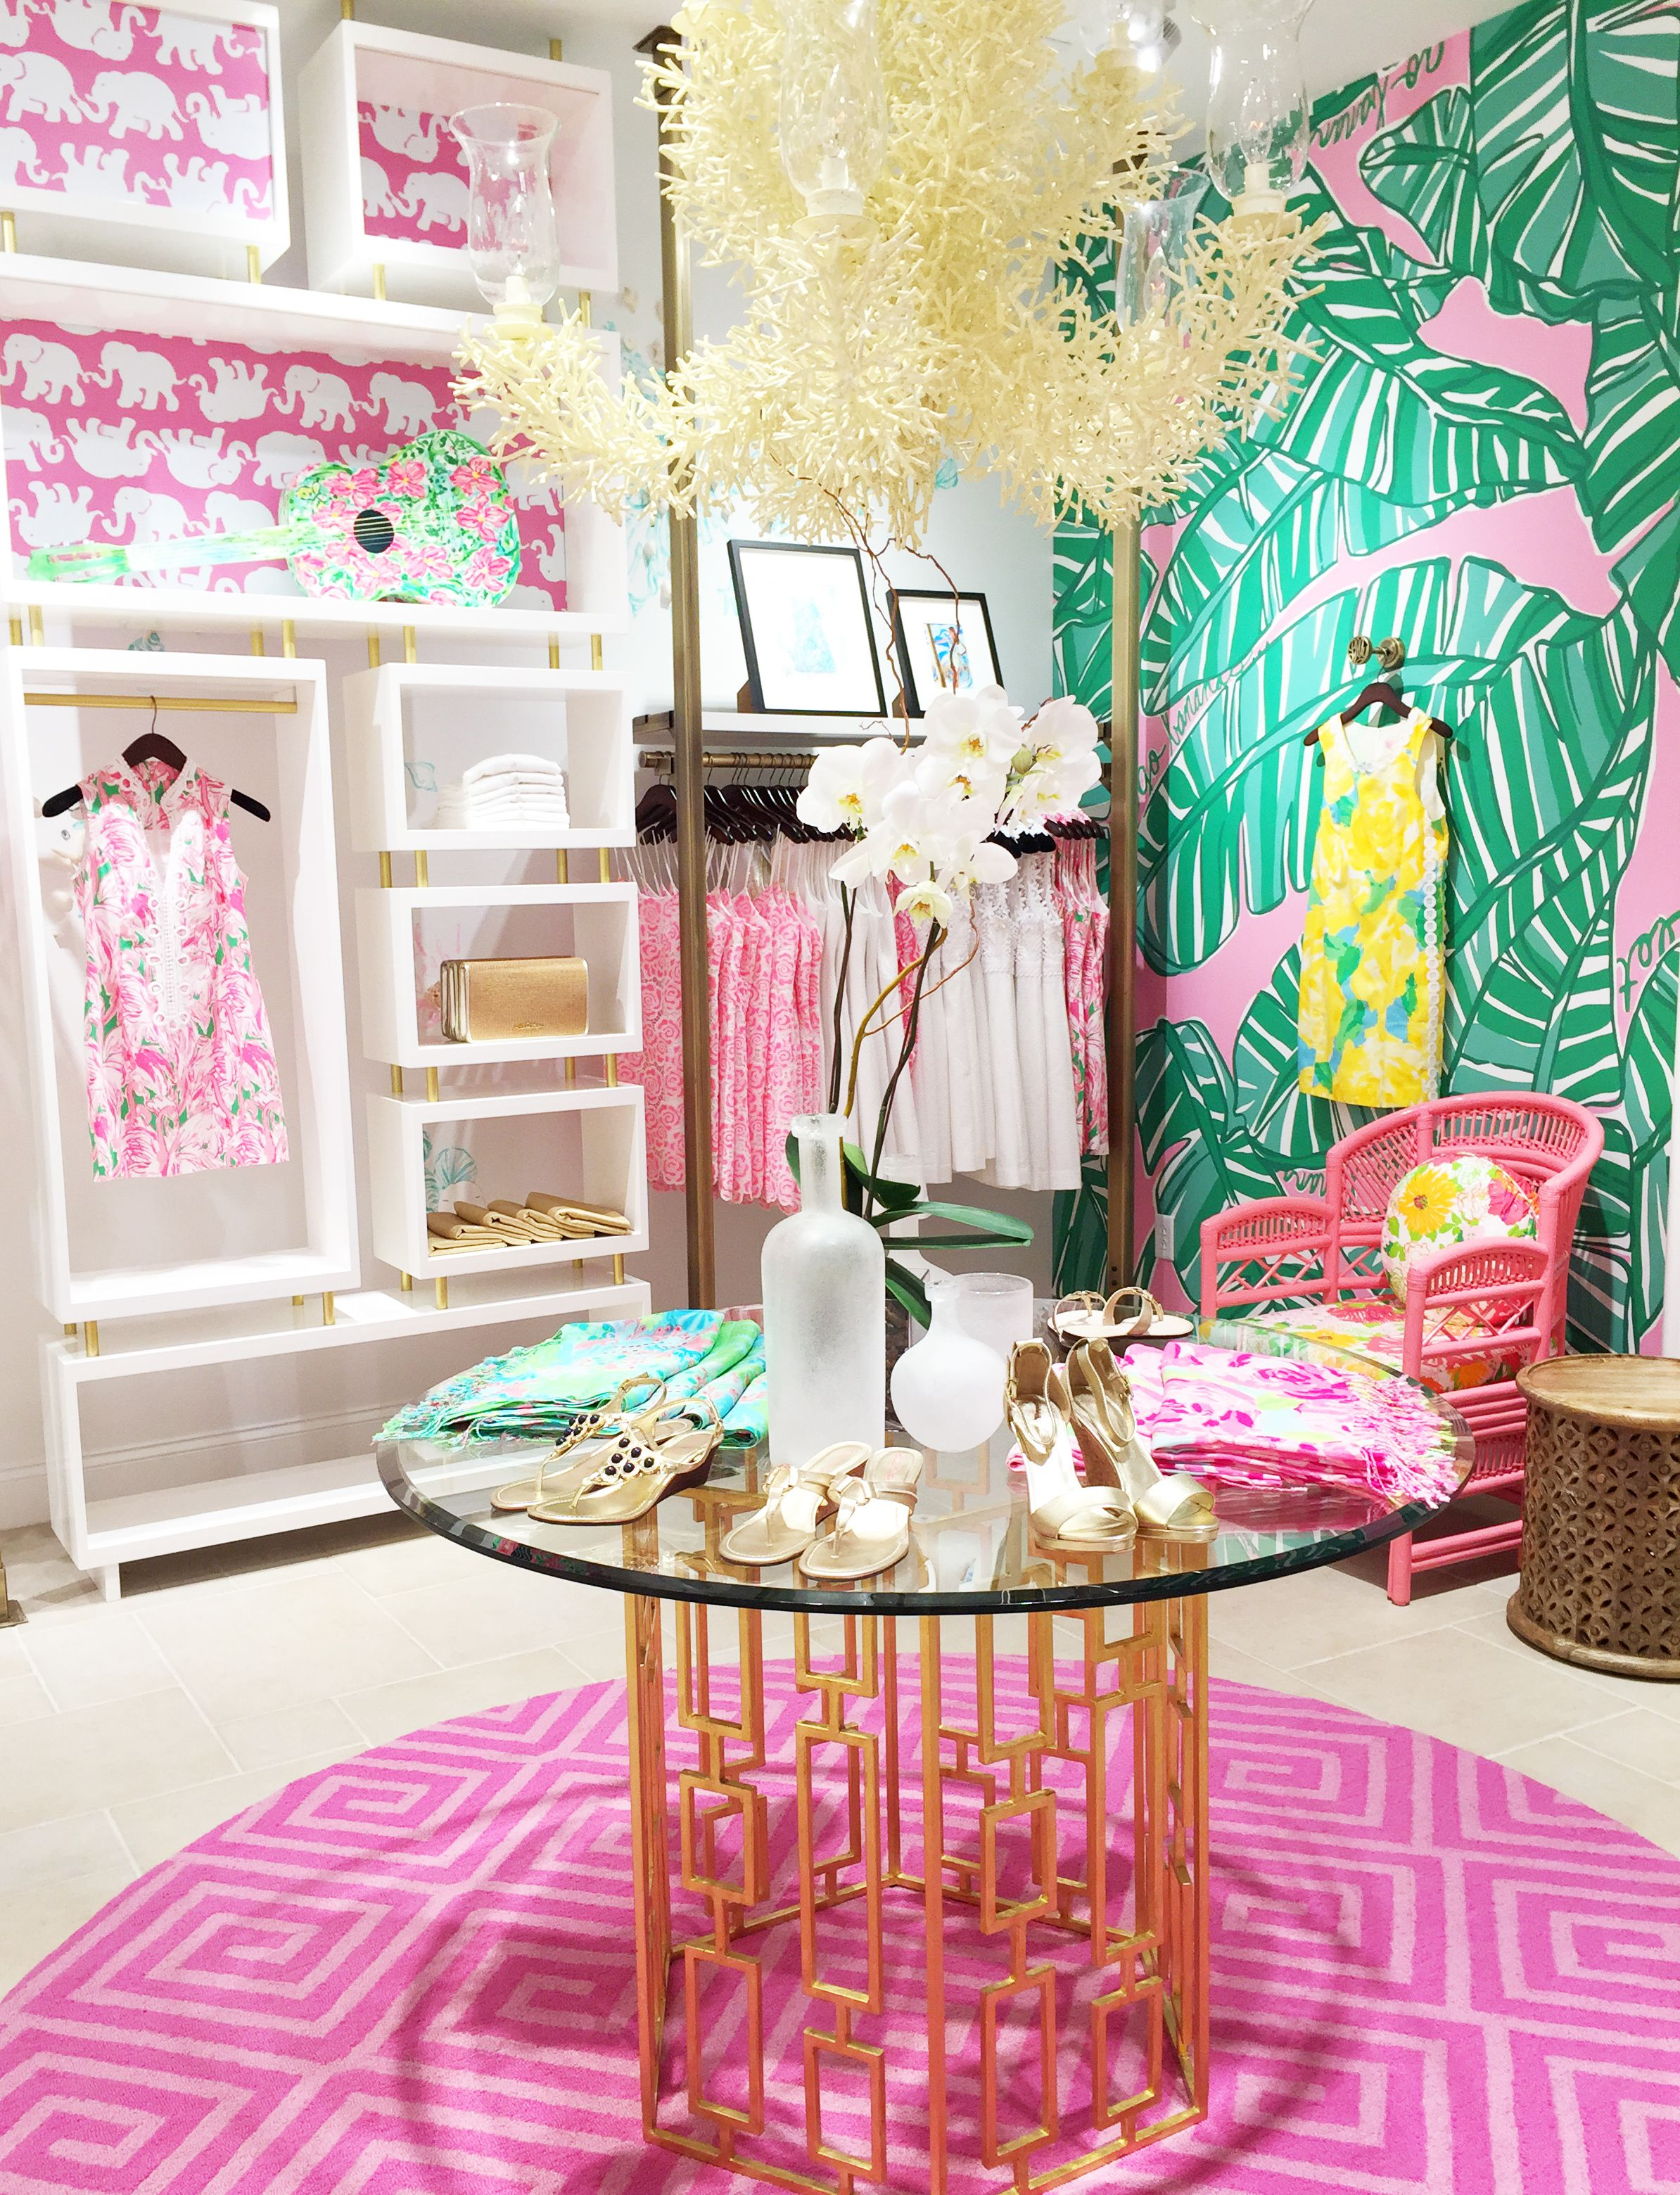 Lilly Pulitzer Resort Wear & Chic Beach Clothing  Home decor